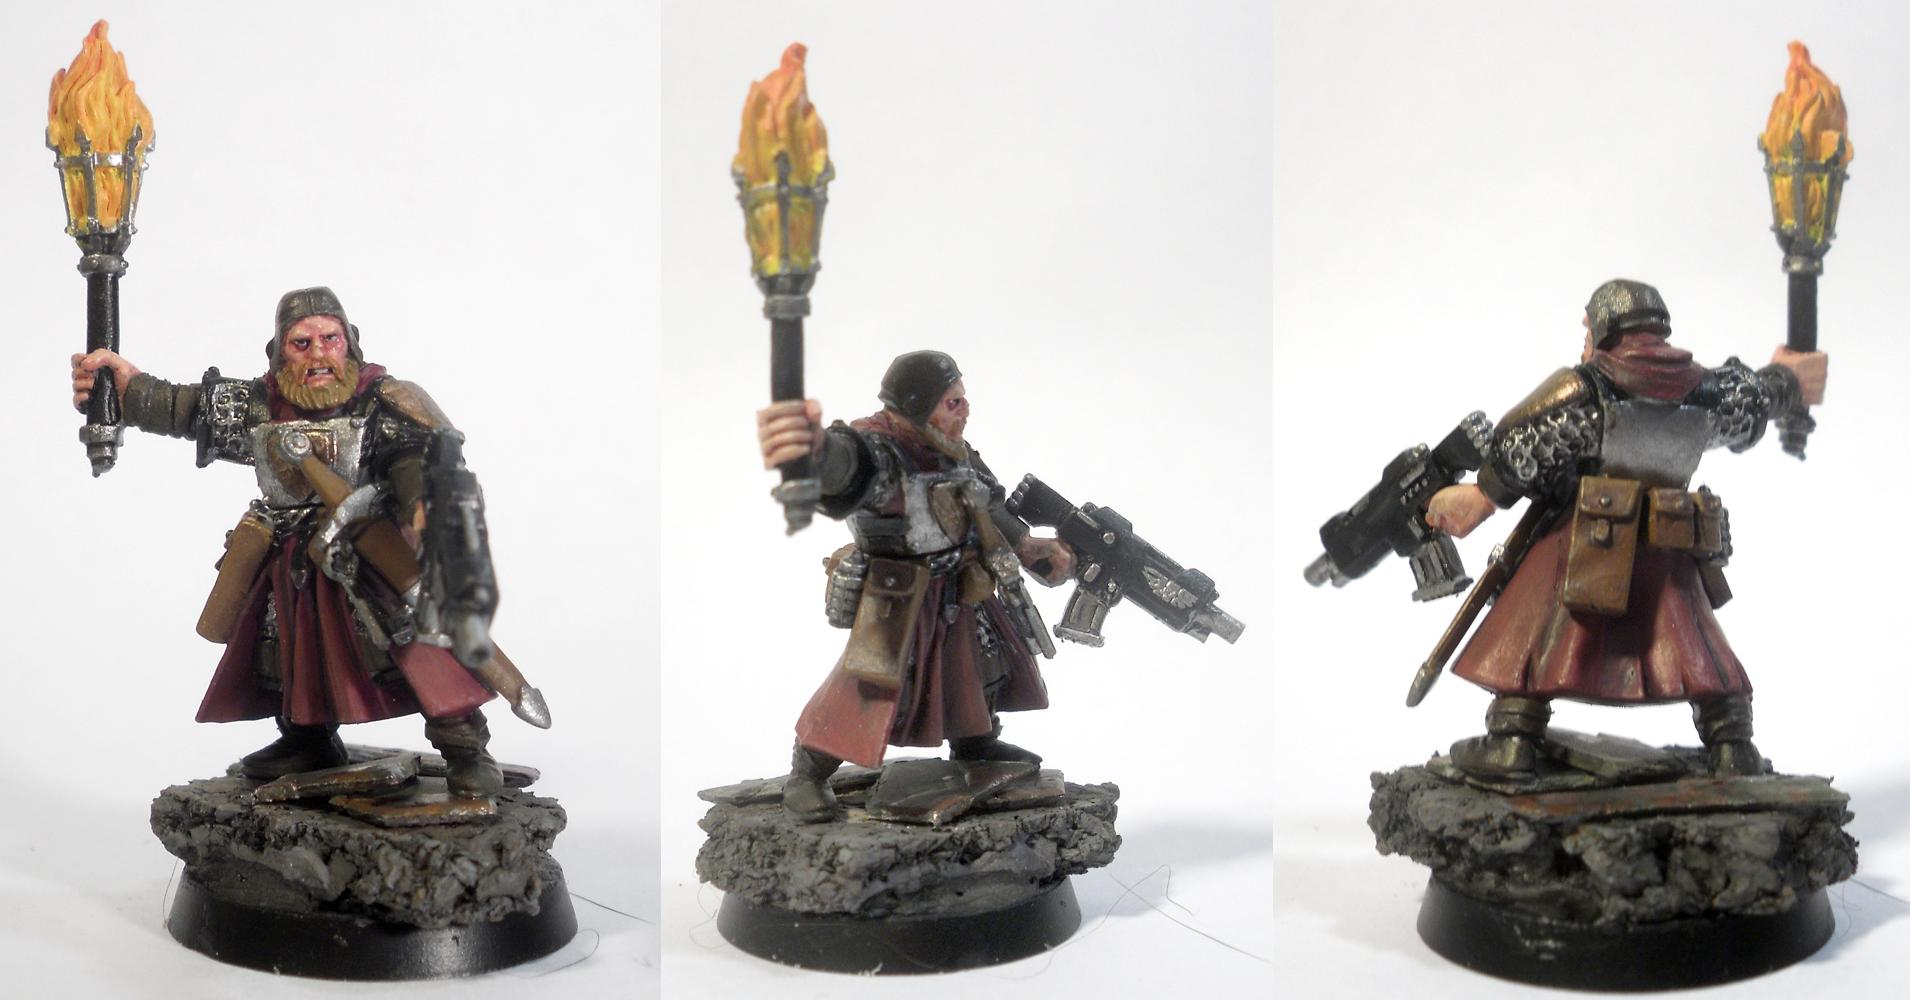 Acolytes, Autogun, Inq28, Inquisimunda, Inquisition, Smg, Witch Hunters